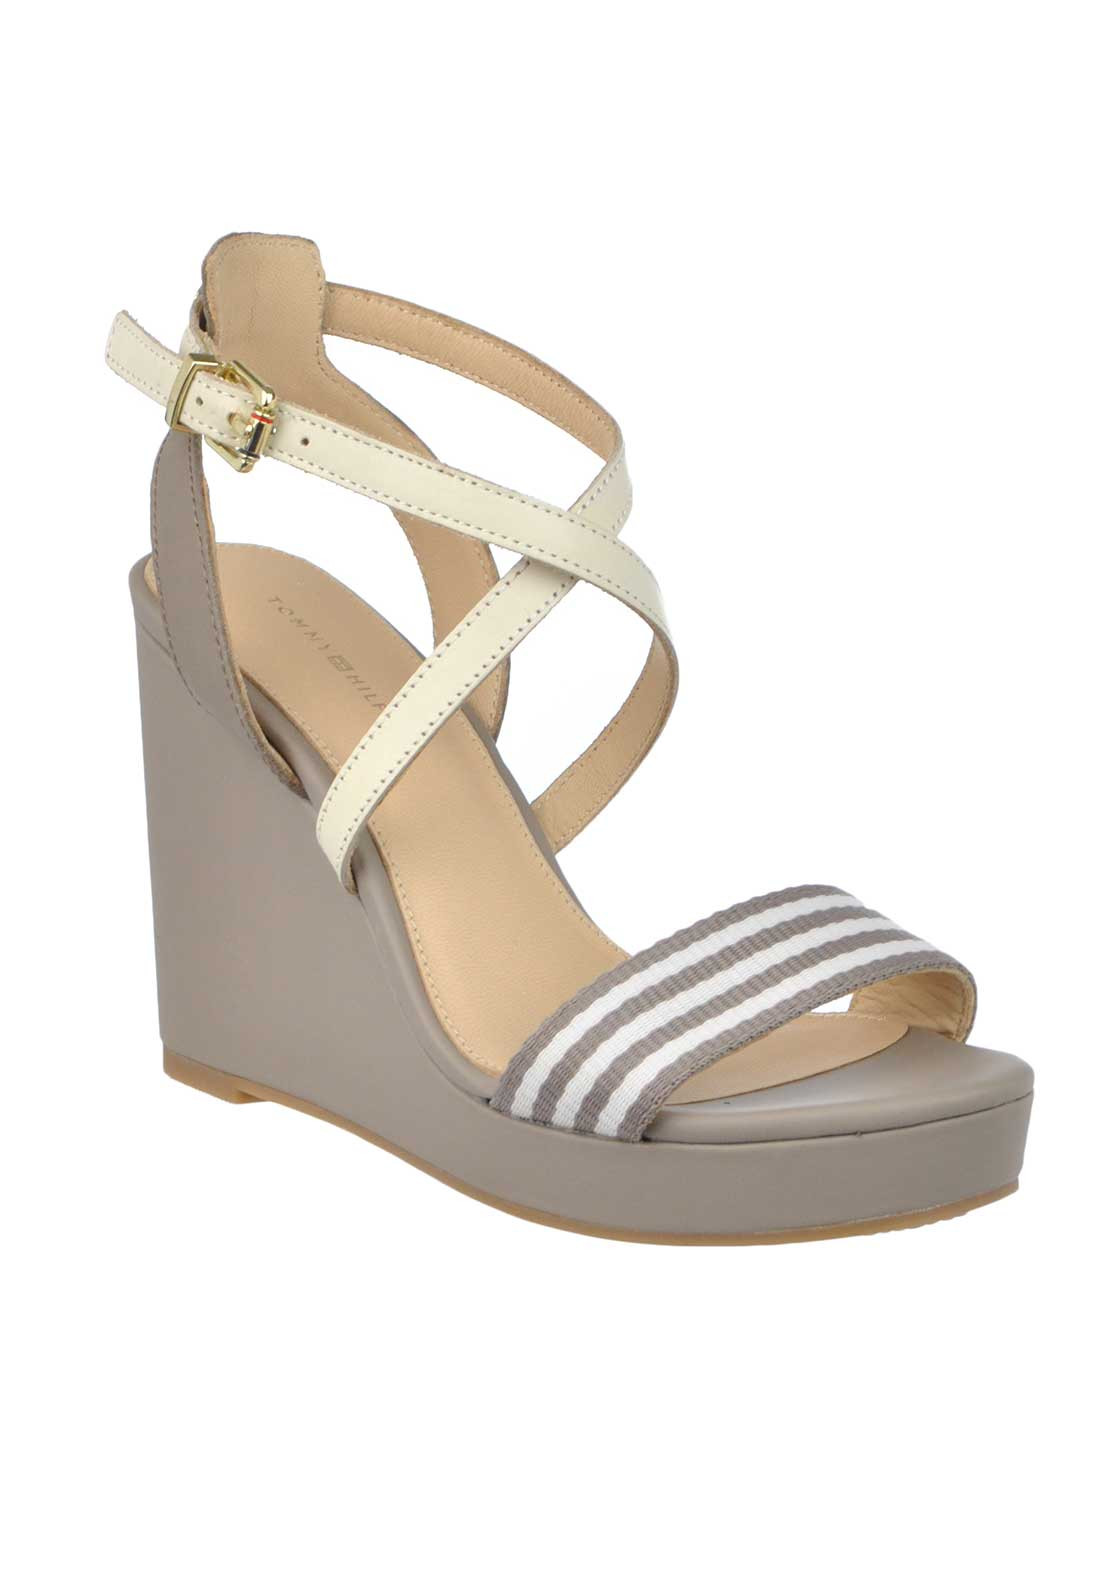 Tommy Hilfiger Womens Leather Criss Cross Ankle Strap Wedged Sandals, Taupe